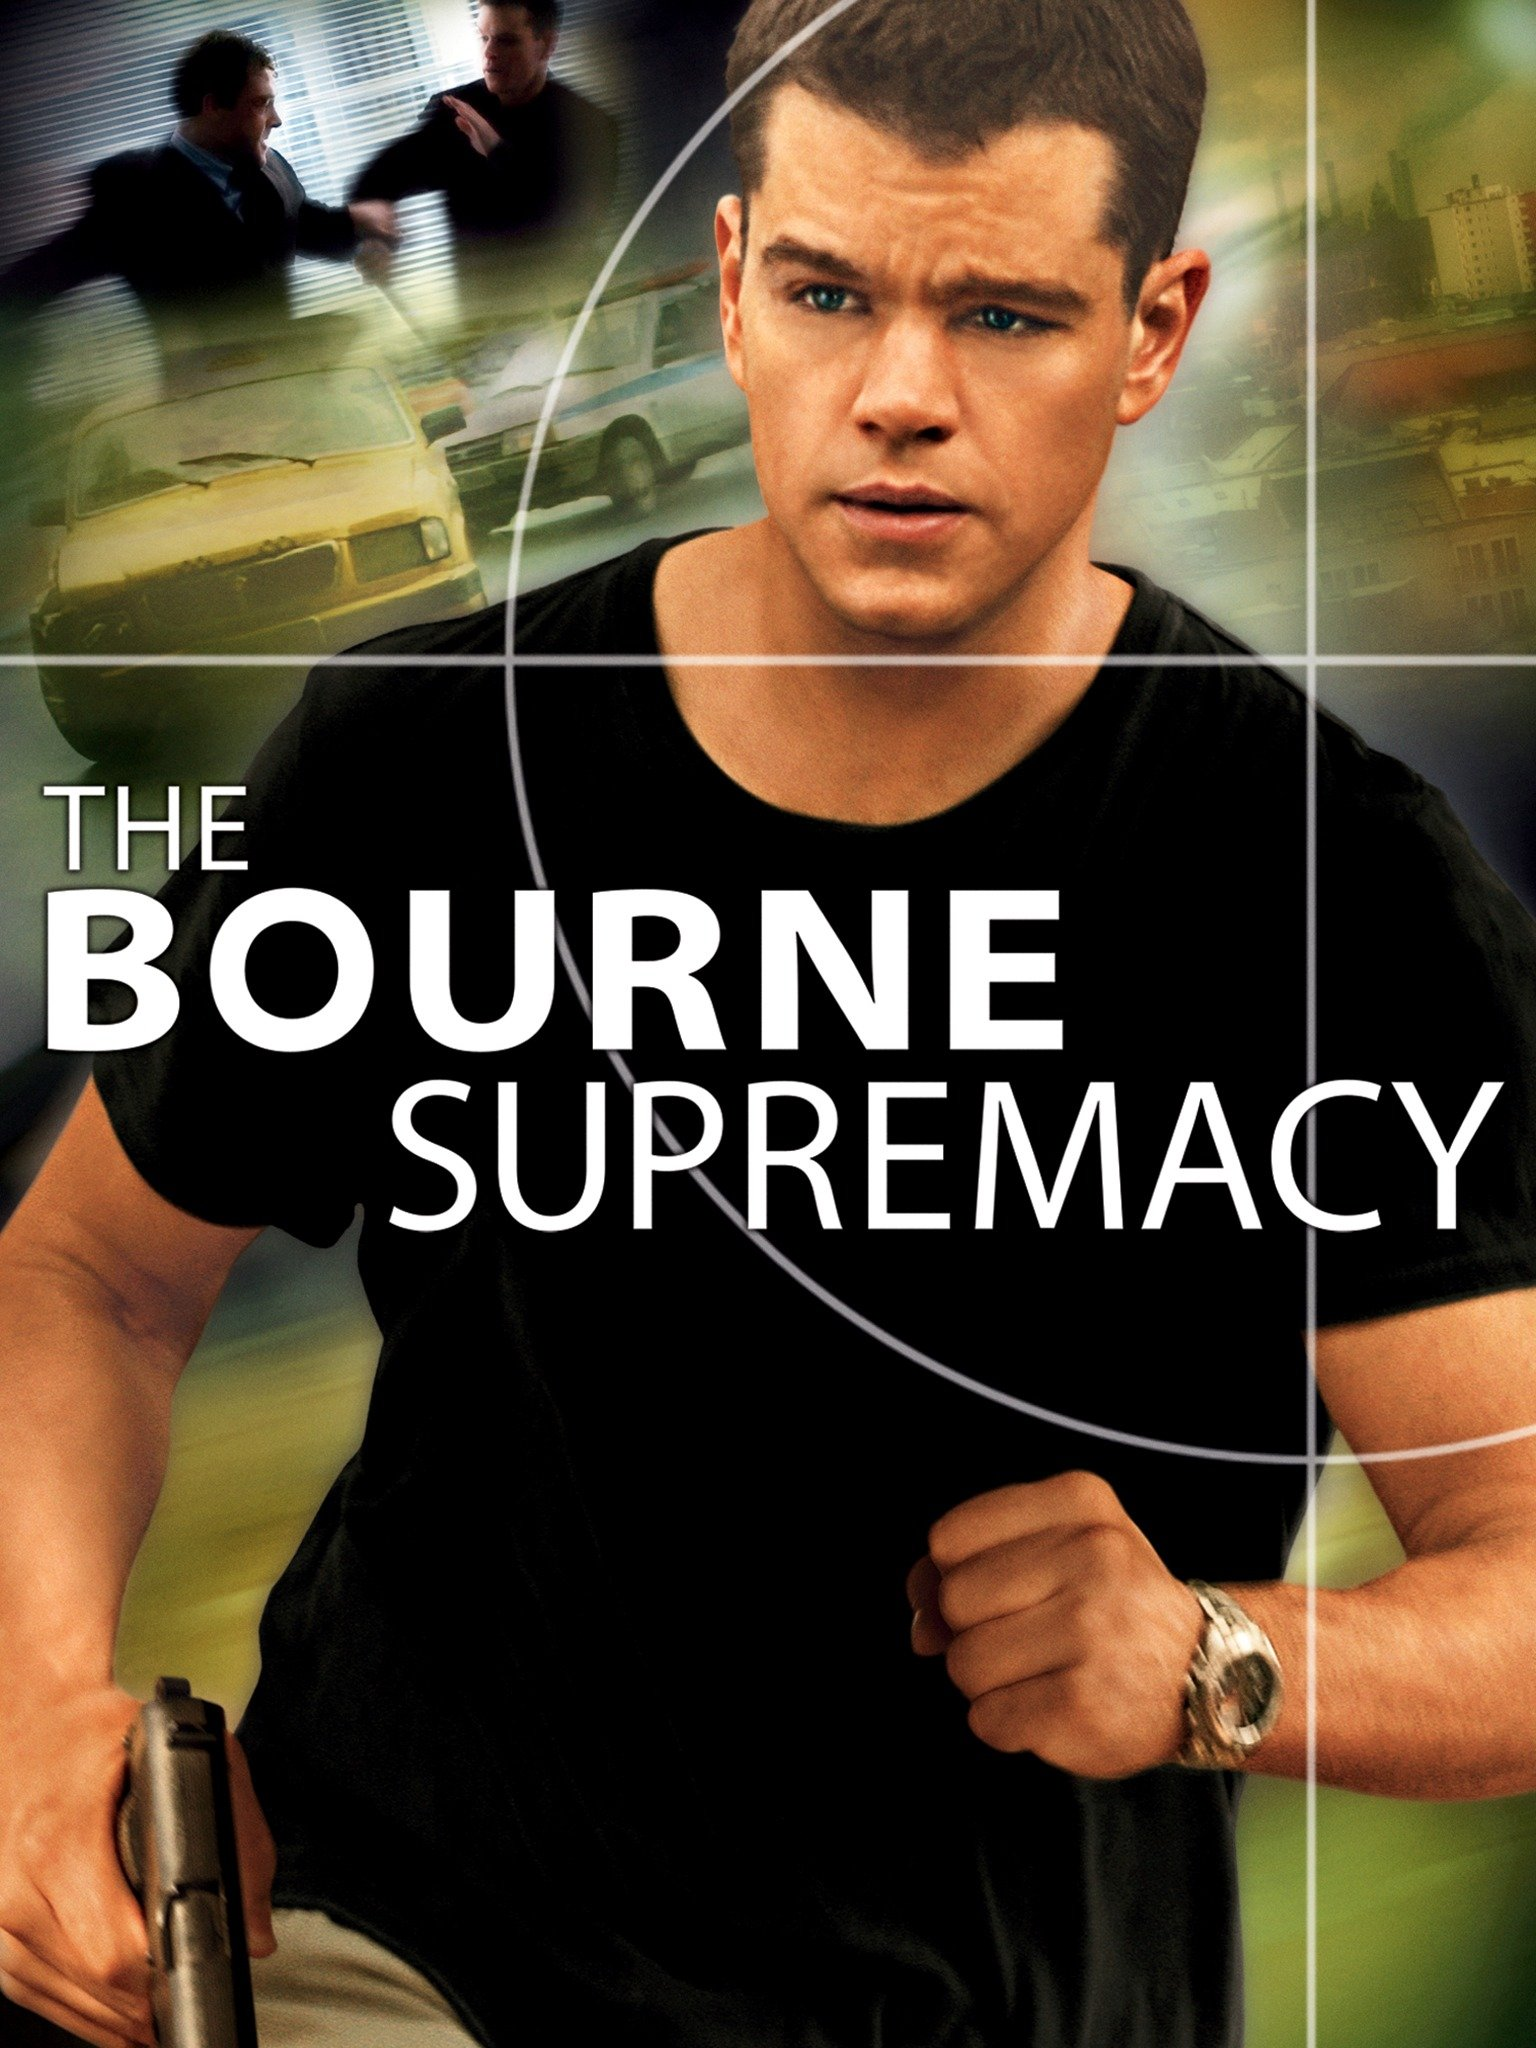 The Bourne Supremacy (2004) - Rotten Tomatoes